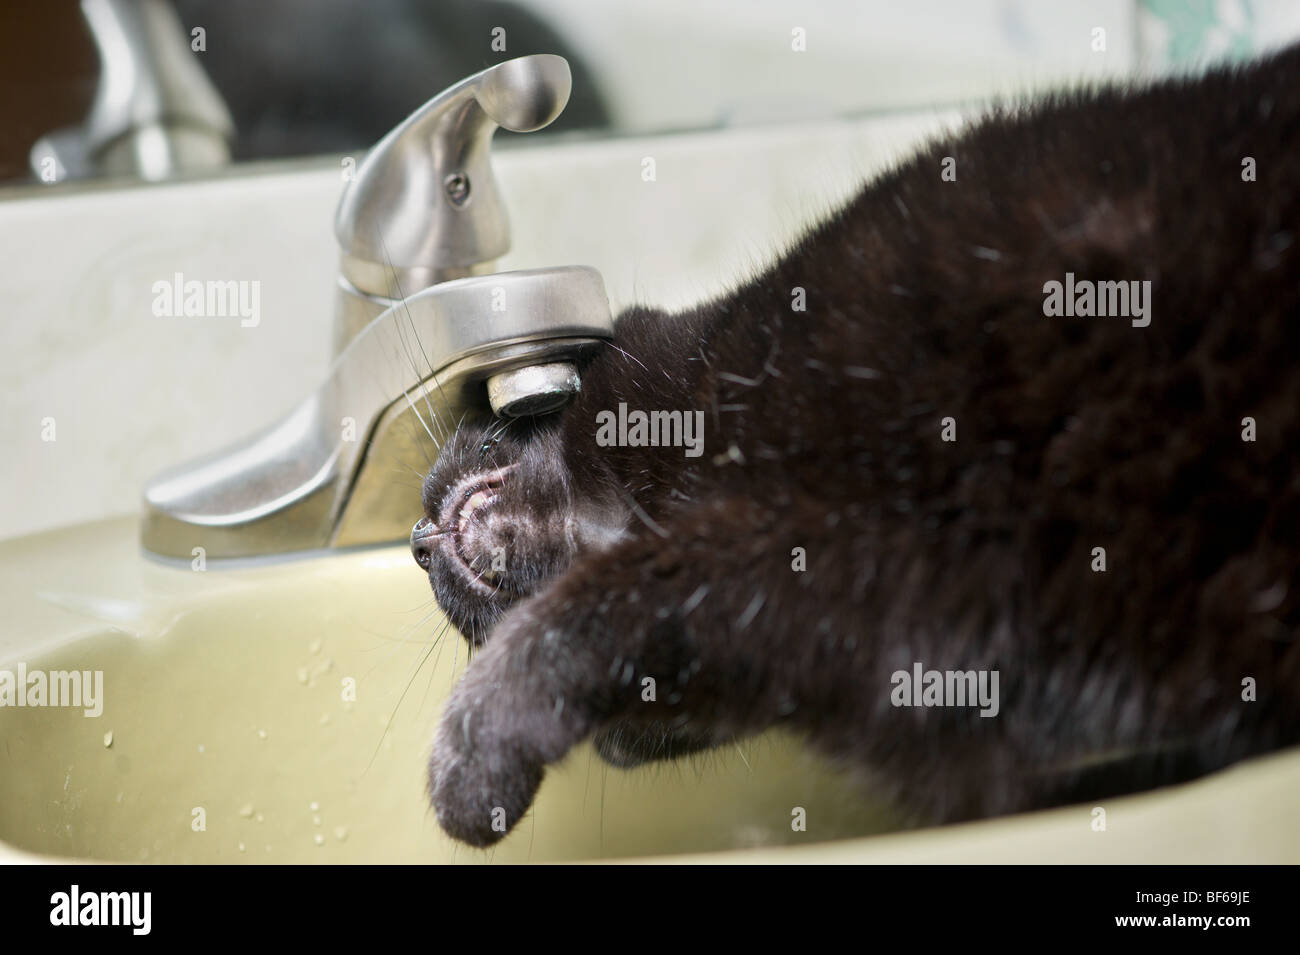 Black cat drinking water out of the sink - Stock Image